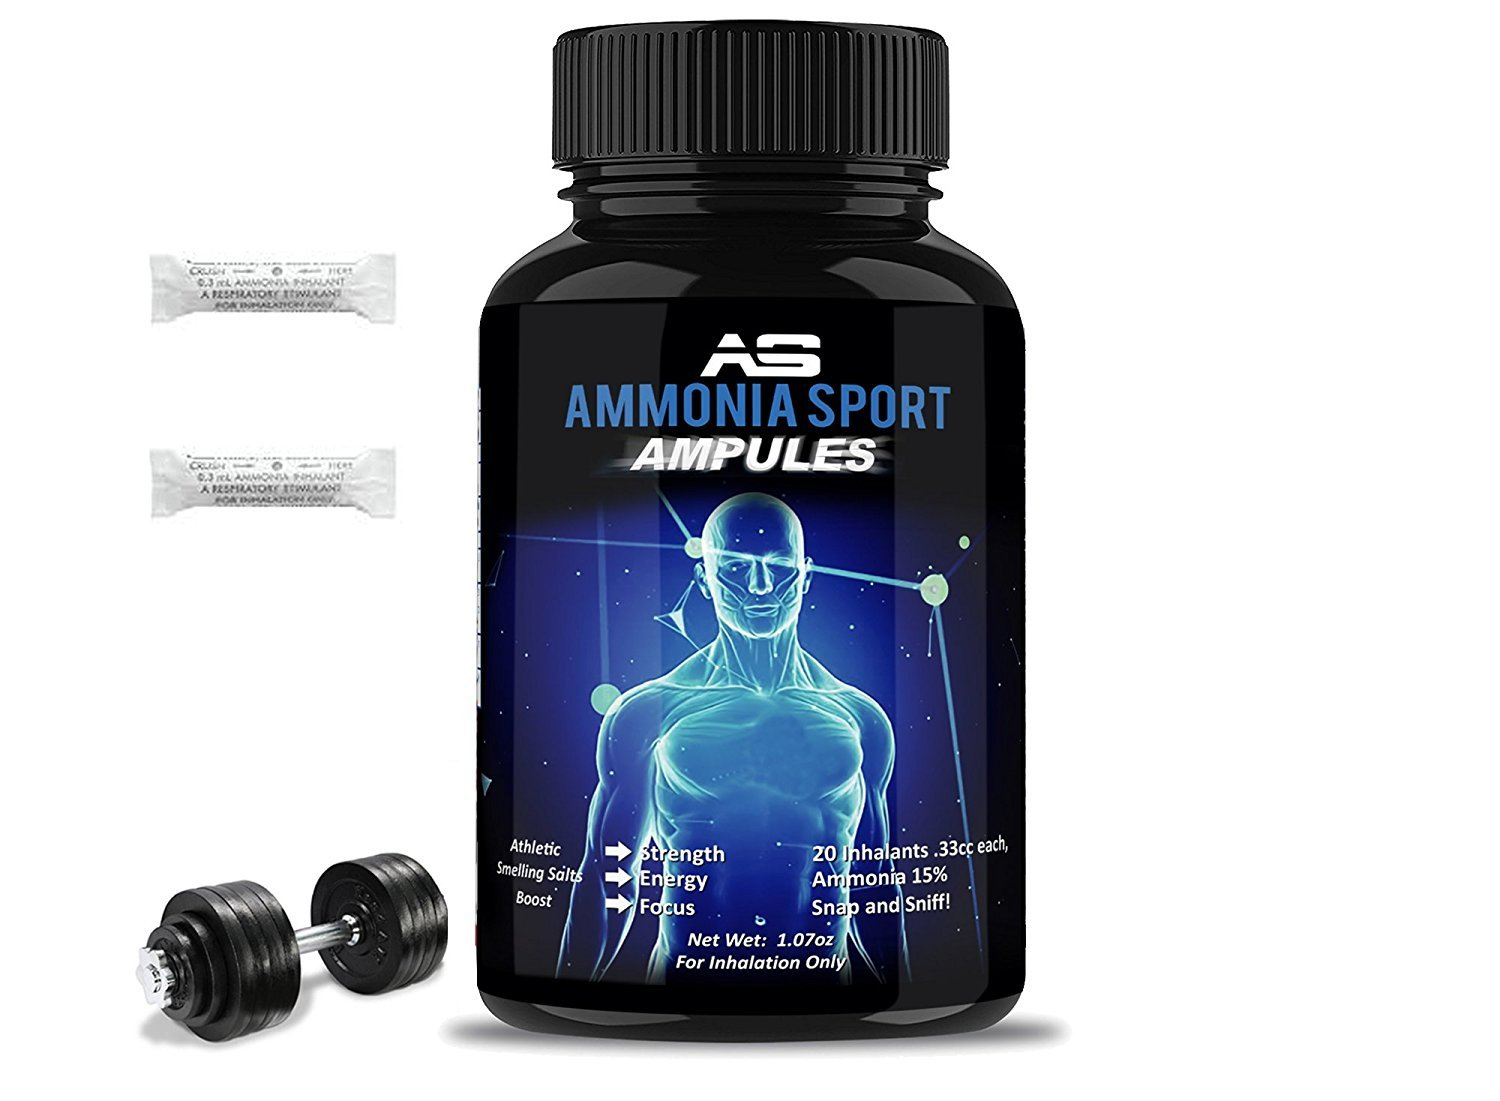 AmmoniaSport Athletic Smelling Salts - Maximum Energy Ammonia Inhalant - Smelling Salt / Ammonia Inhalants